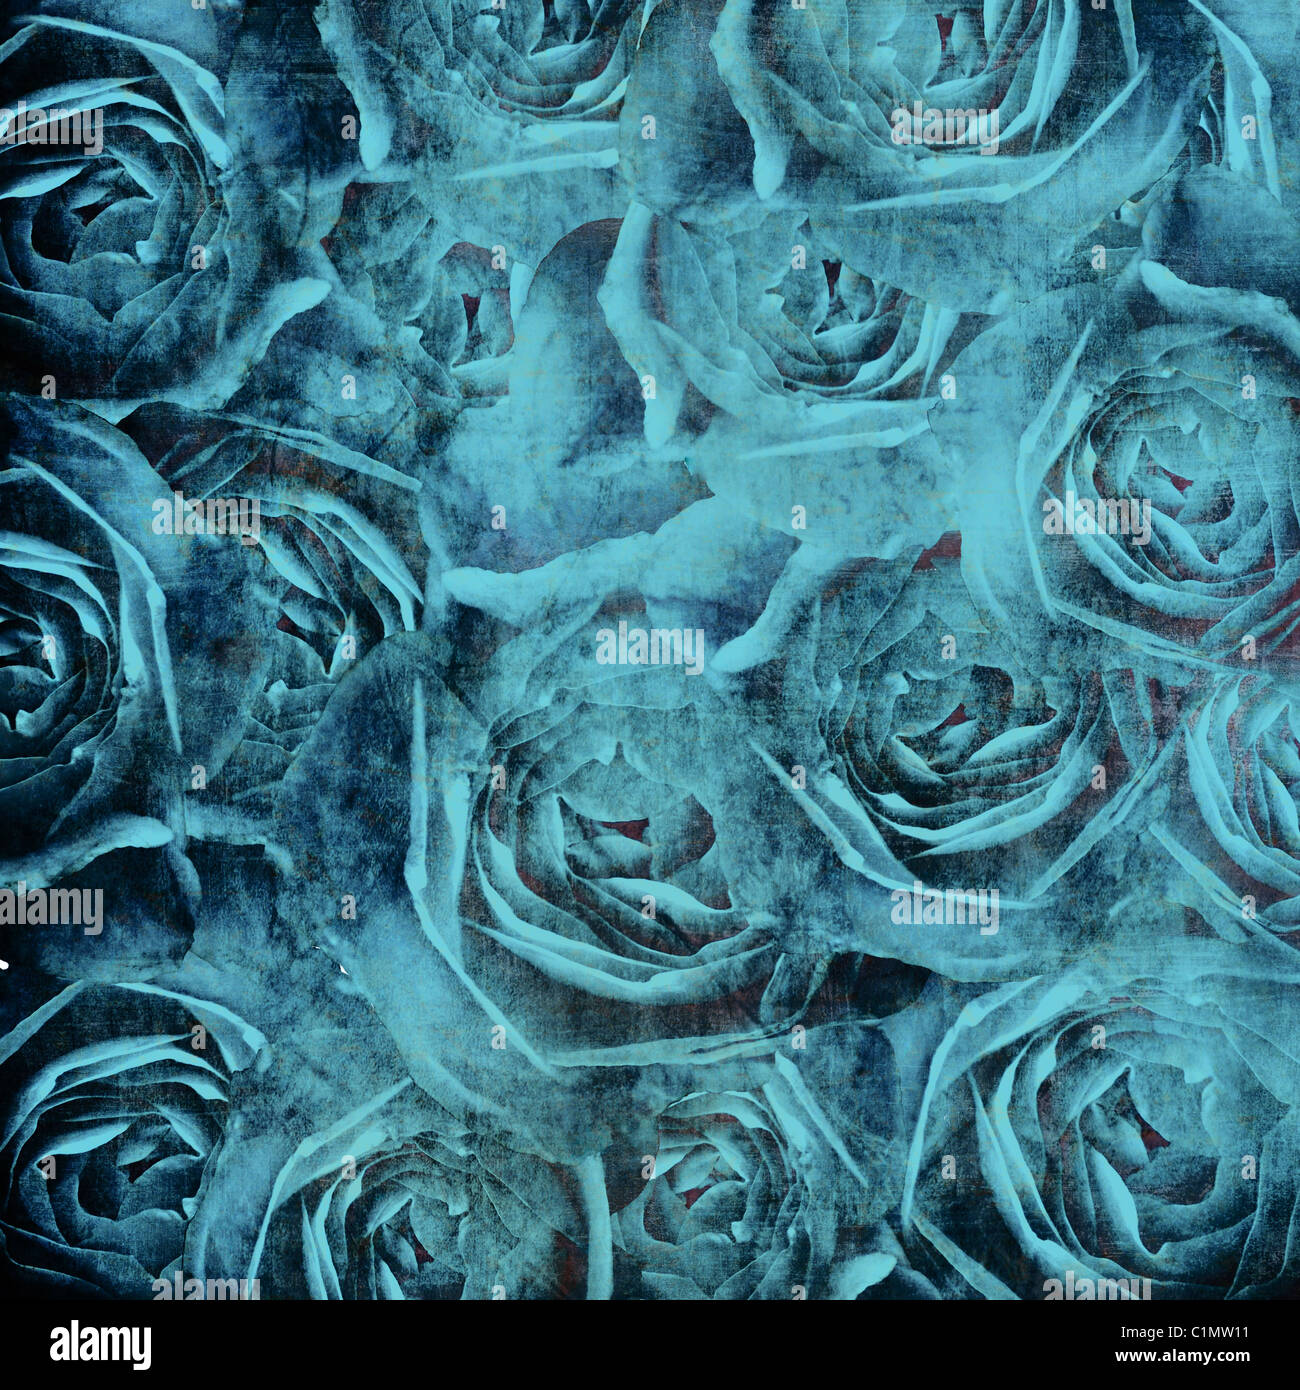 Grunge fond beau bleu Roses Photo Stock